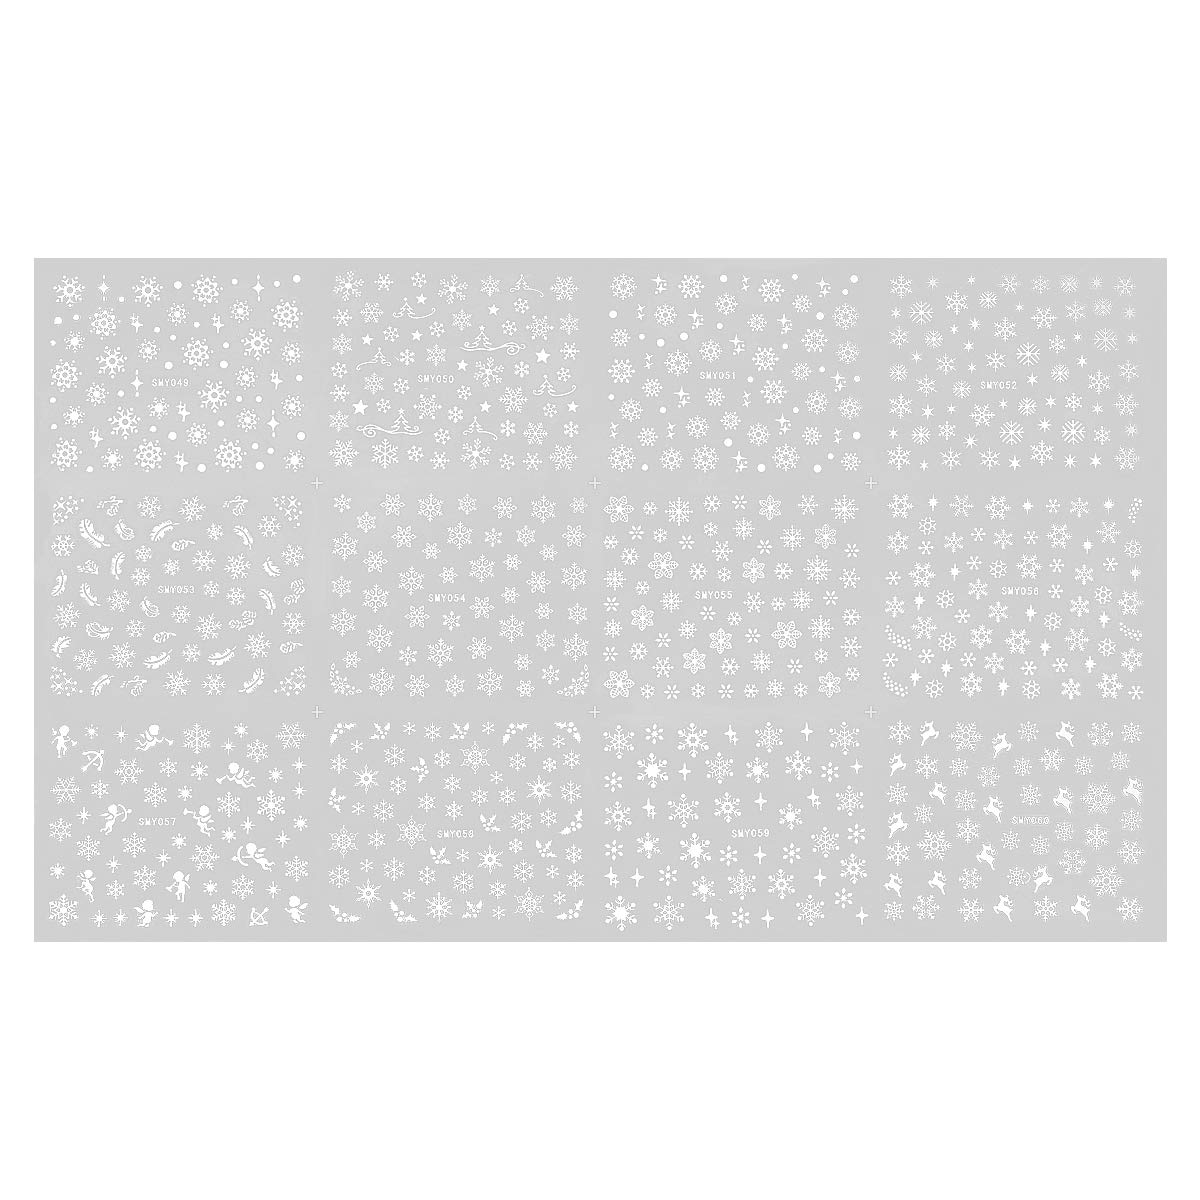 Nail Stickers, Snowflake Nail Decals Christmas 3D Self-adhesive Nail Art Stickers for Winter Holiday